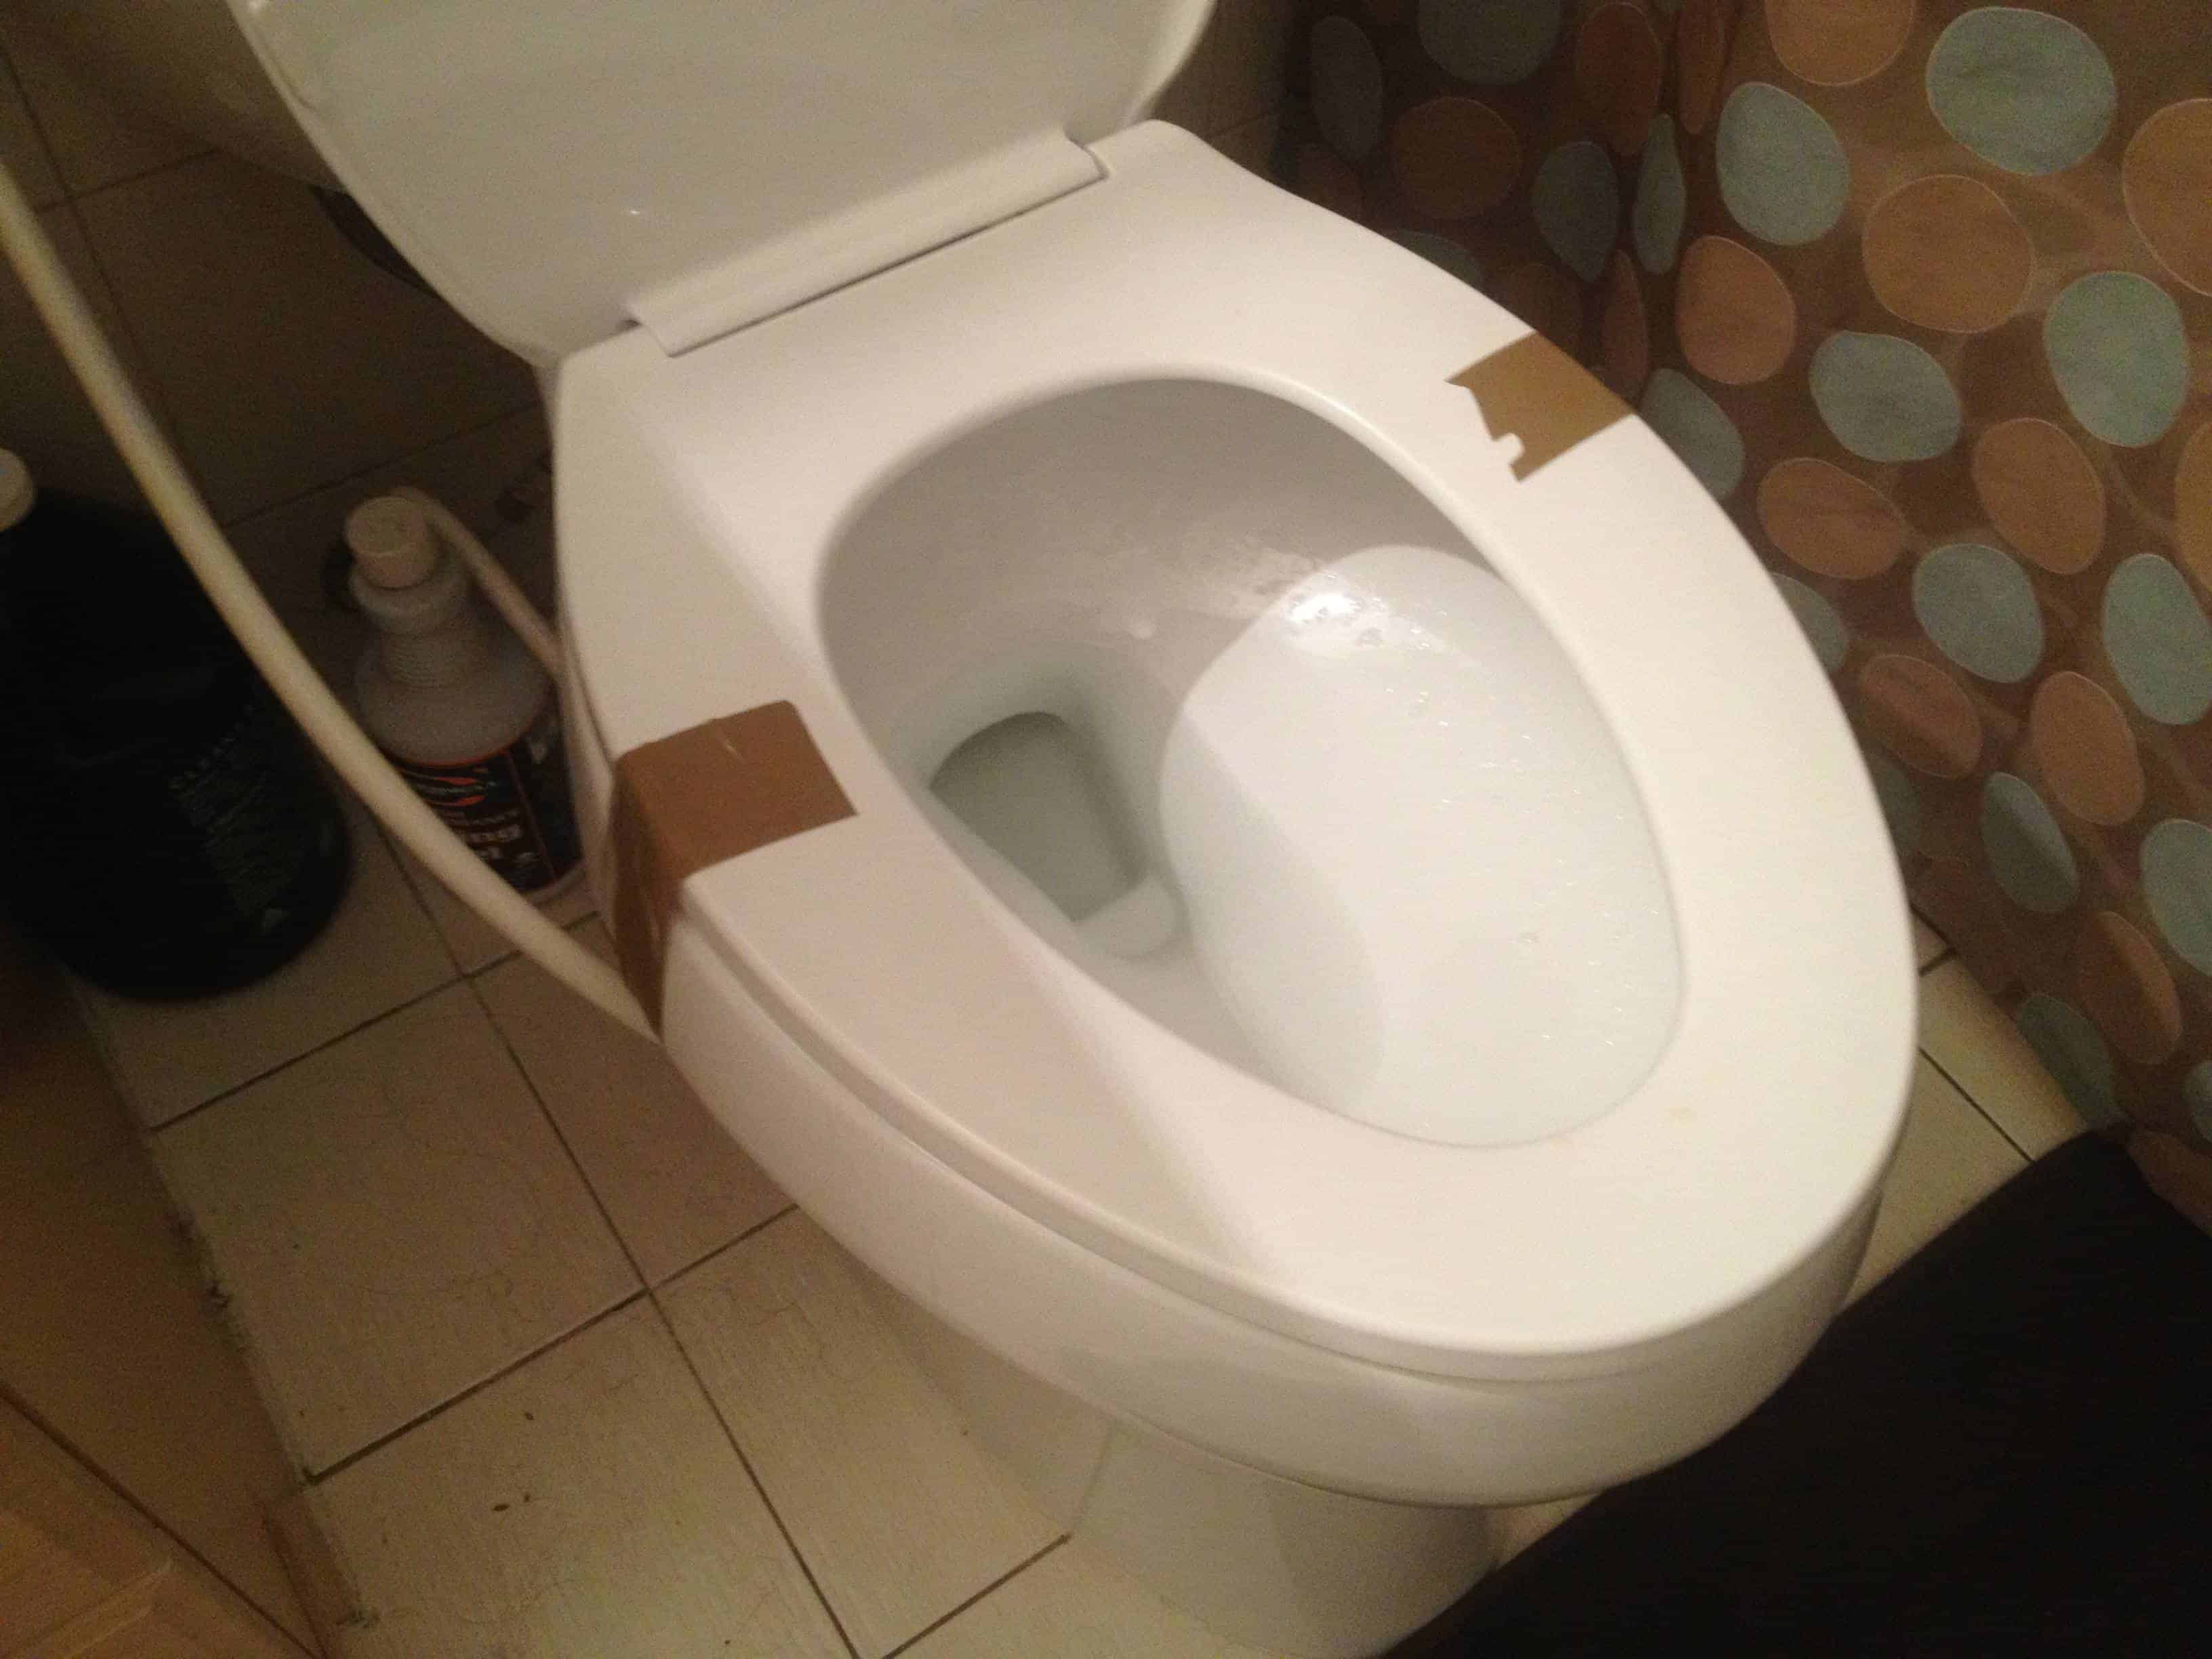 The Position Of The Toilet Seat